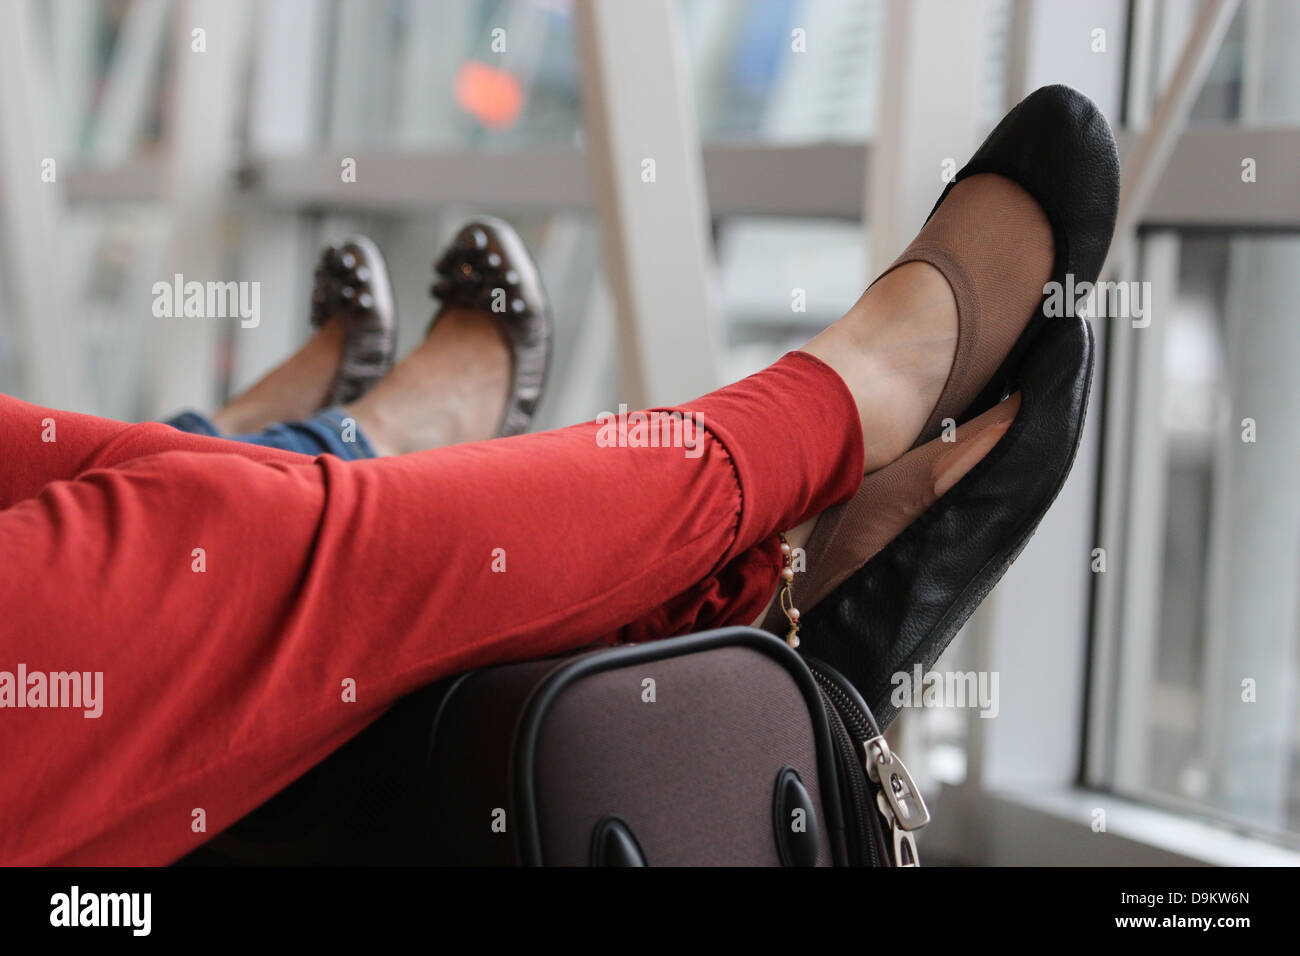 A weary traveller rests her tired, ballet pump & torn sock clad feet on  her suitcase whilst waiting for a flight - Stock Image